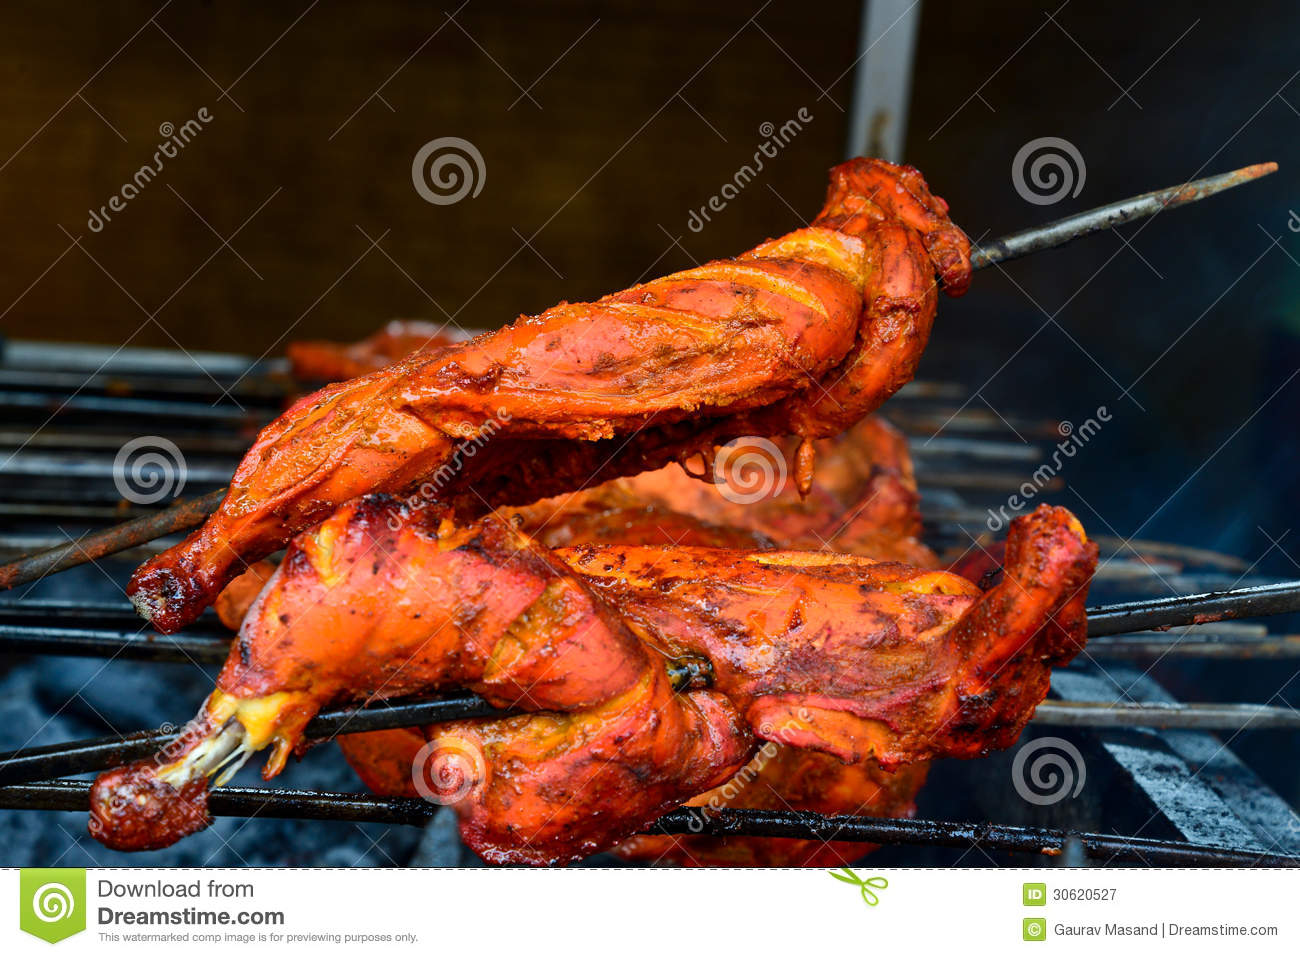 Tandoori Chicken on a grill